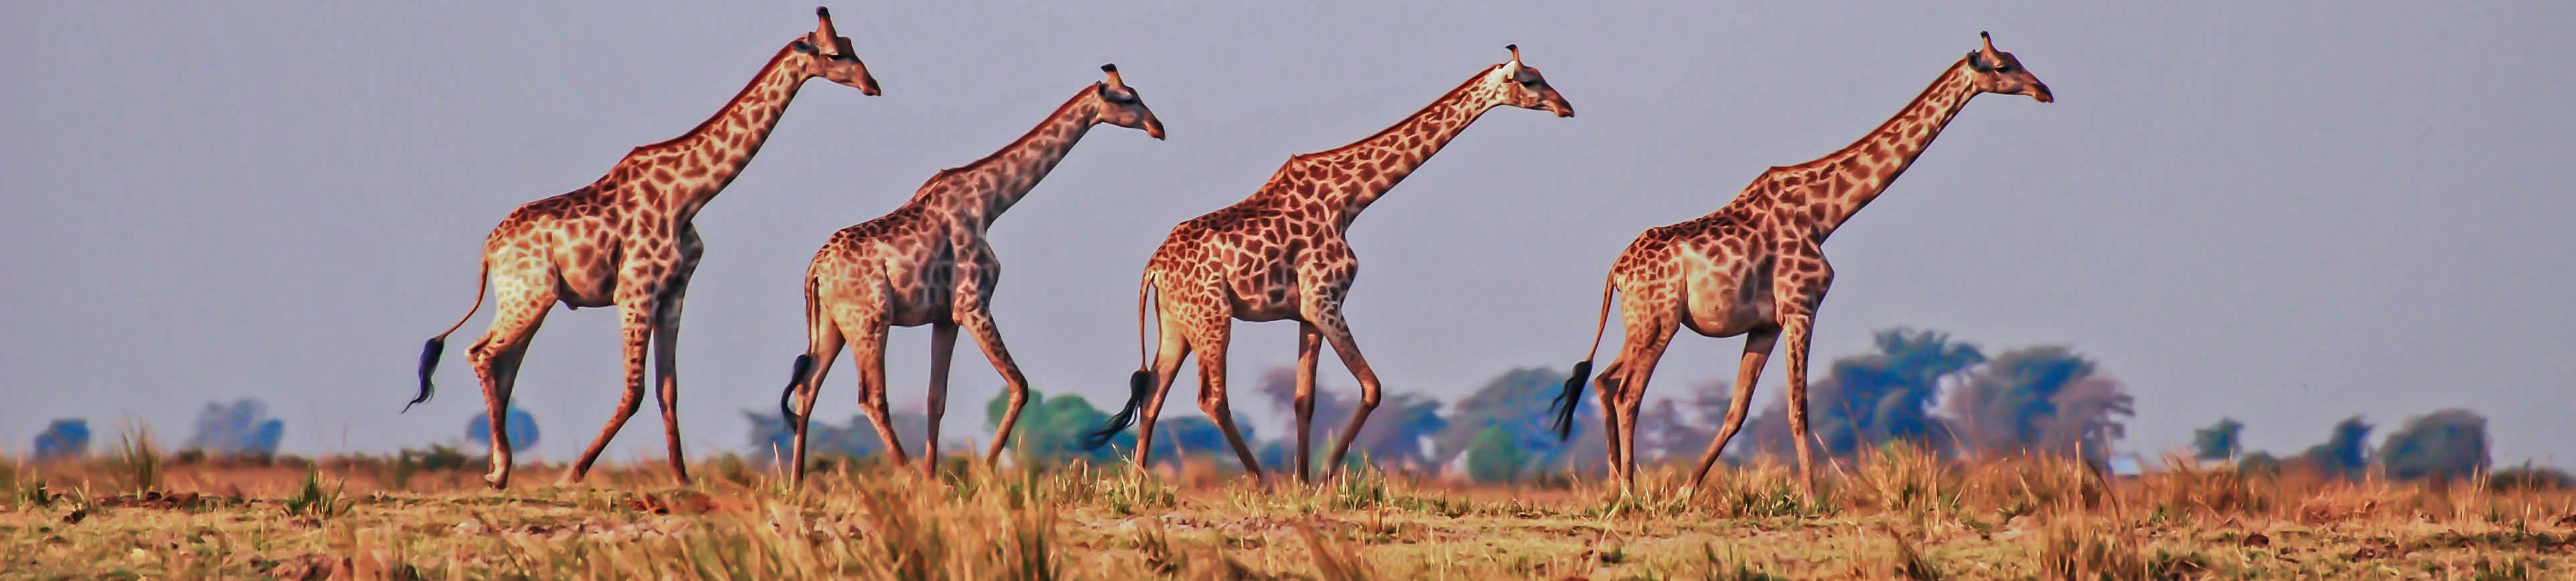 Giraffes on the Chobe floodplain | SGS Africa